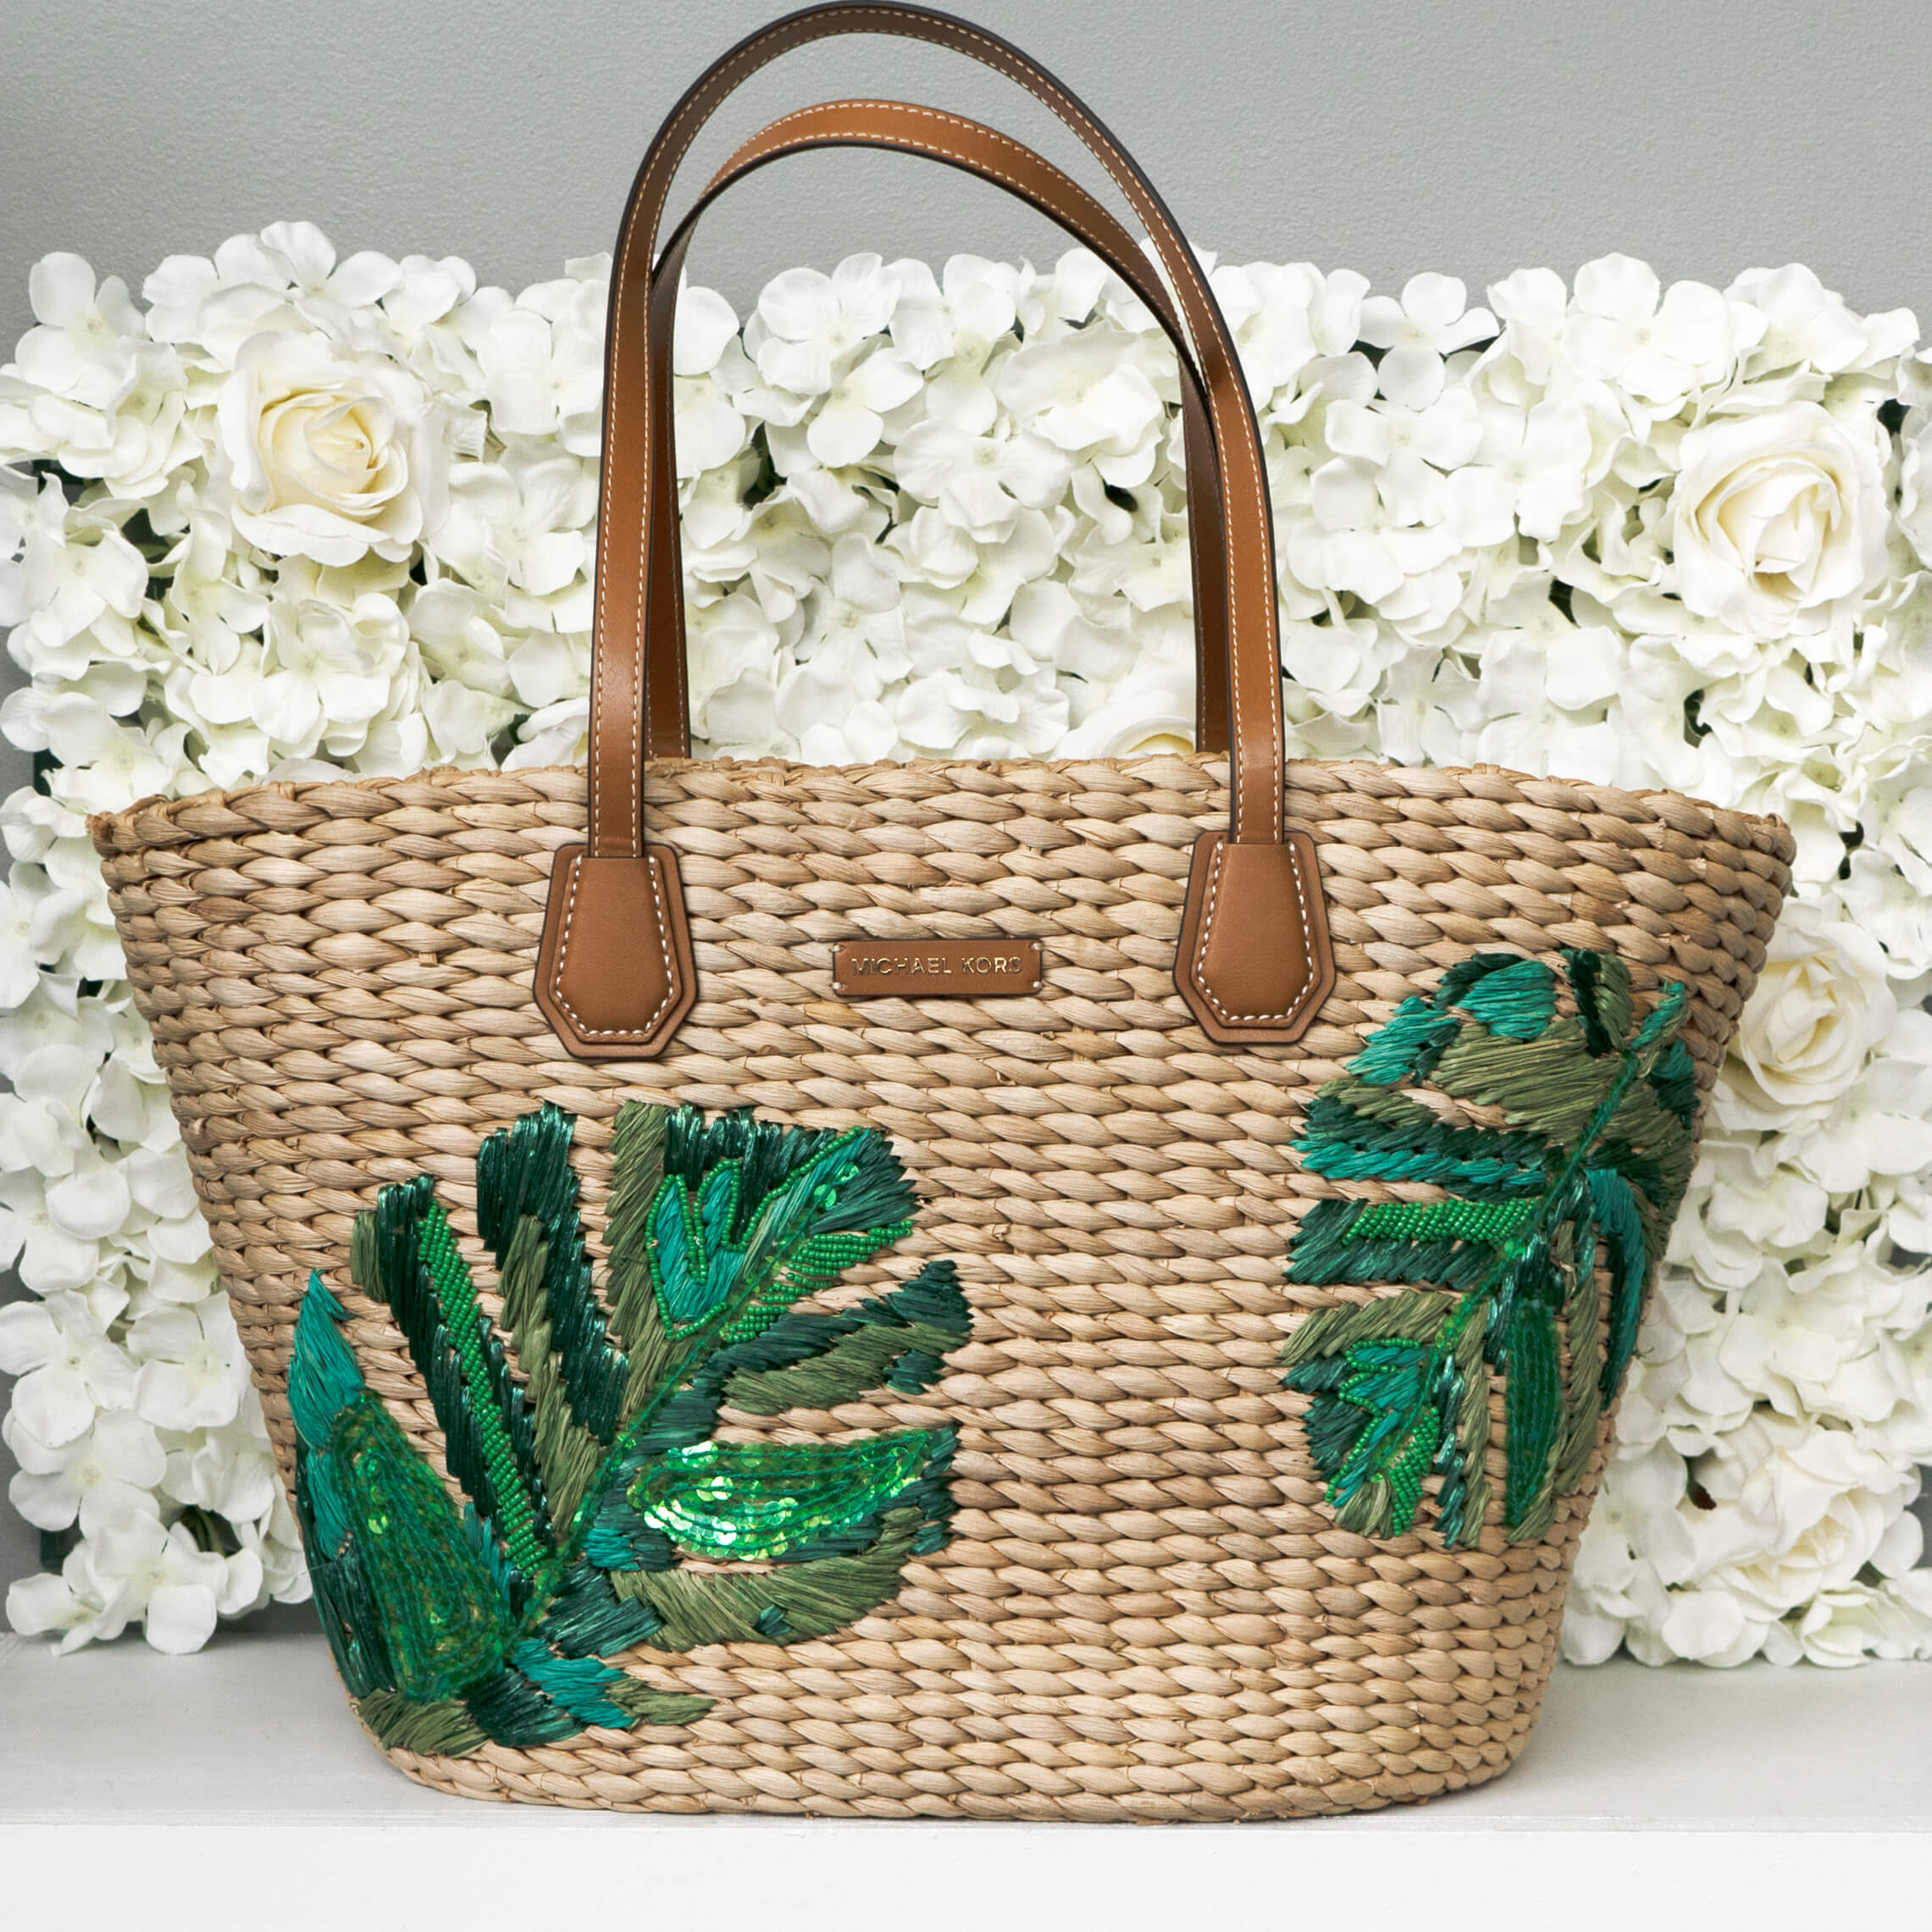 image of straw handbag for summer